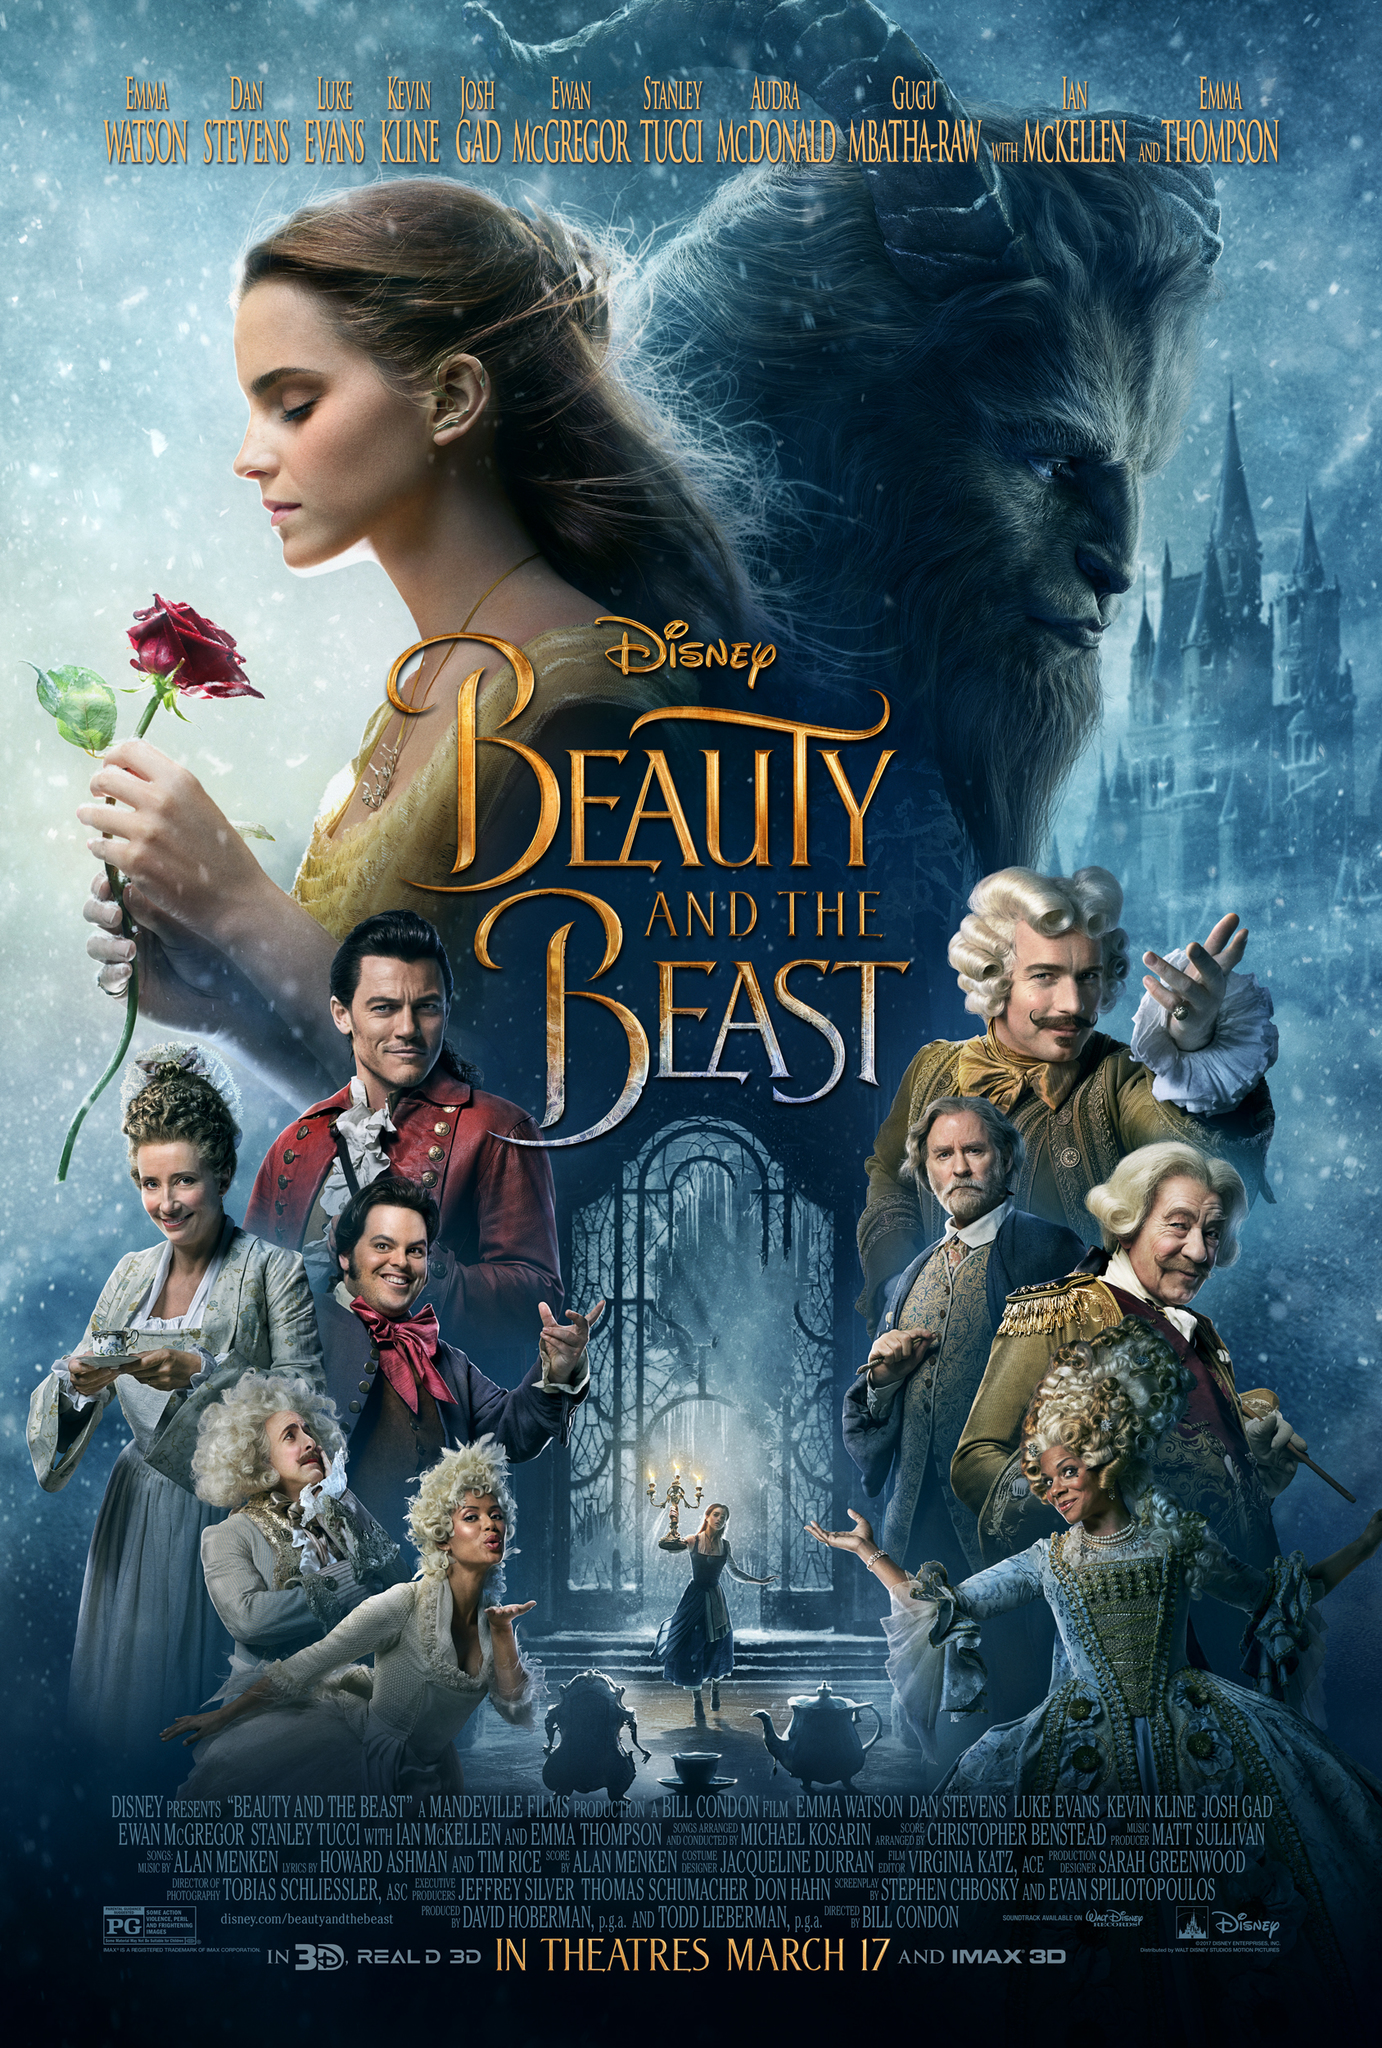 flirting quotes about beauty and the beast cast list 2018